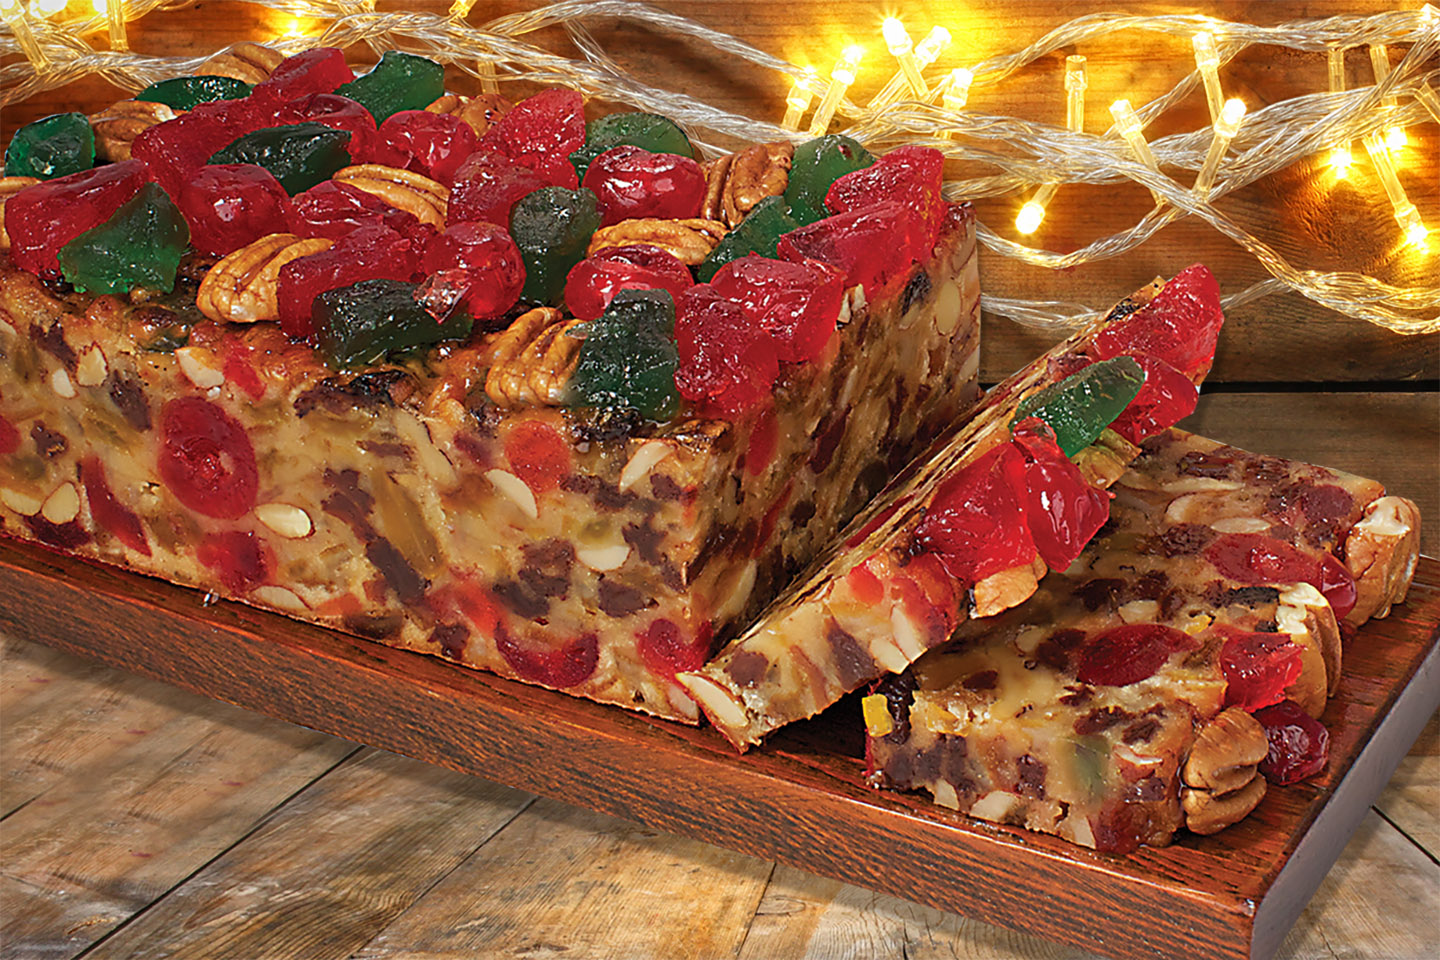 Fruit Cakes For Sale